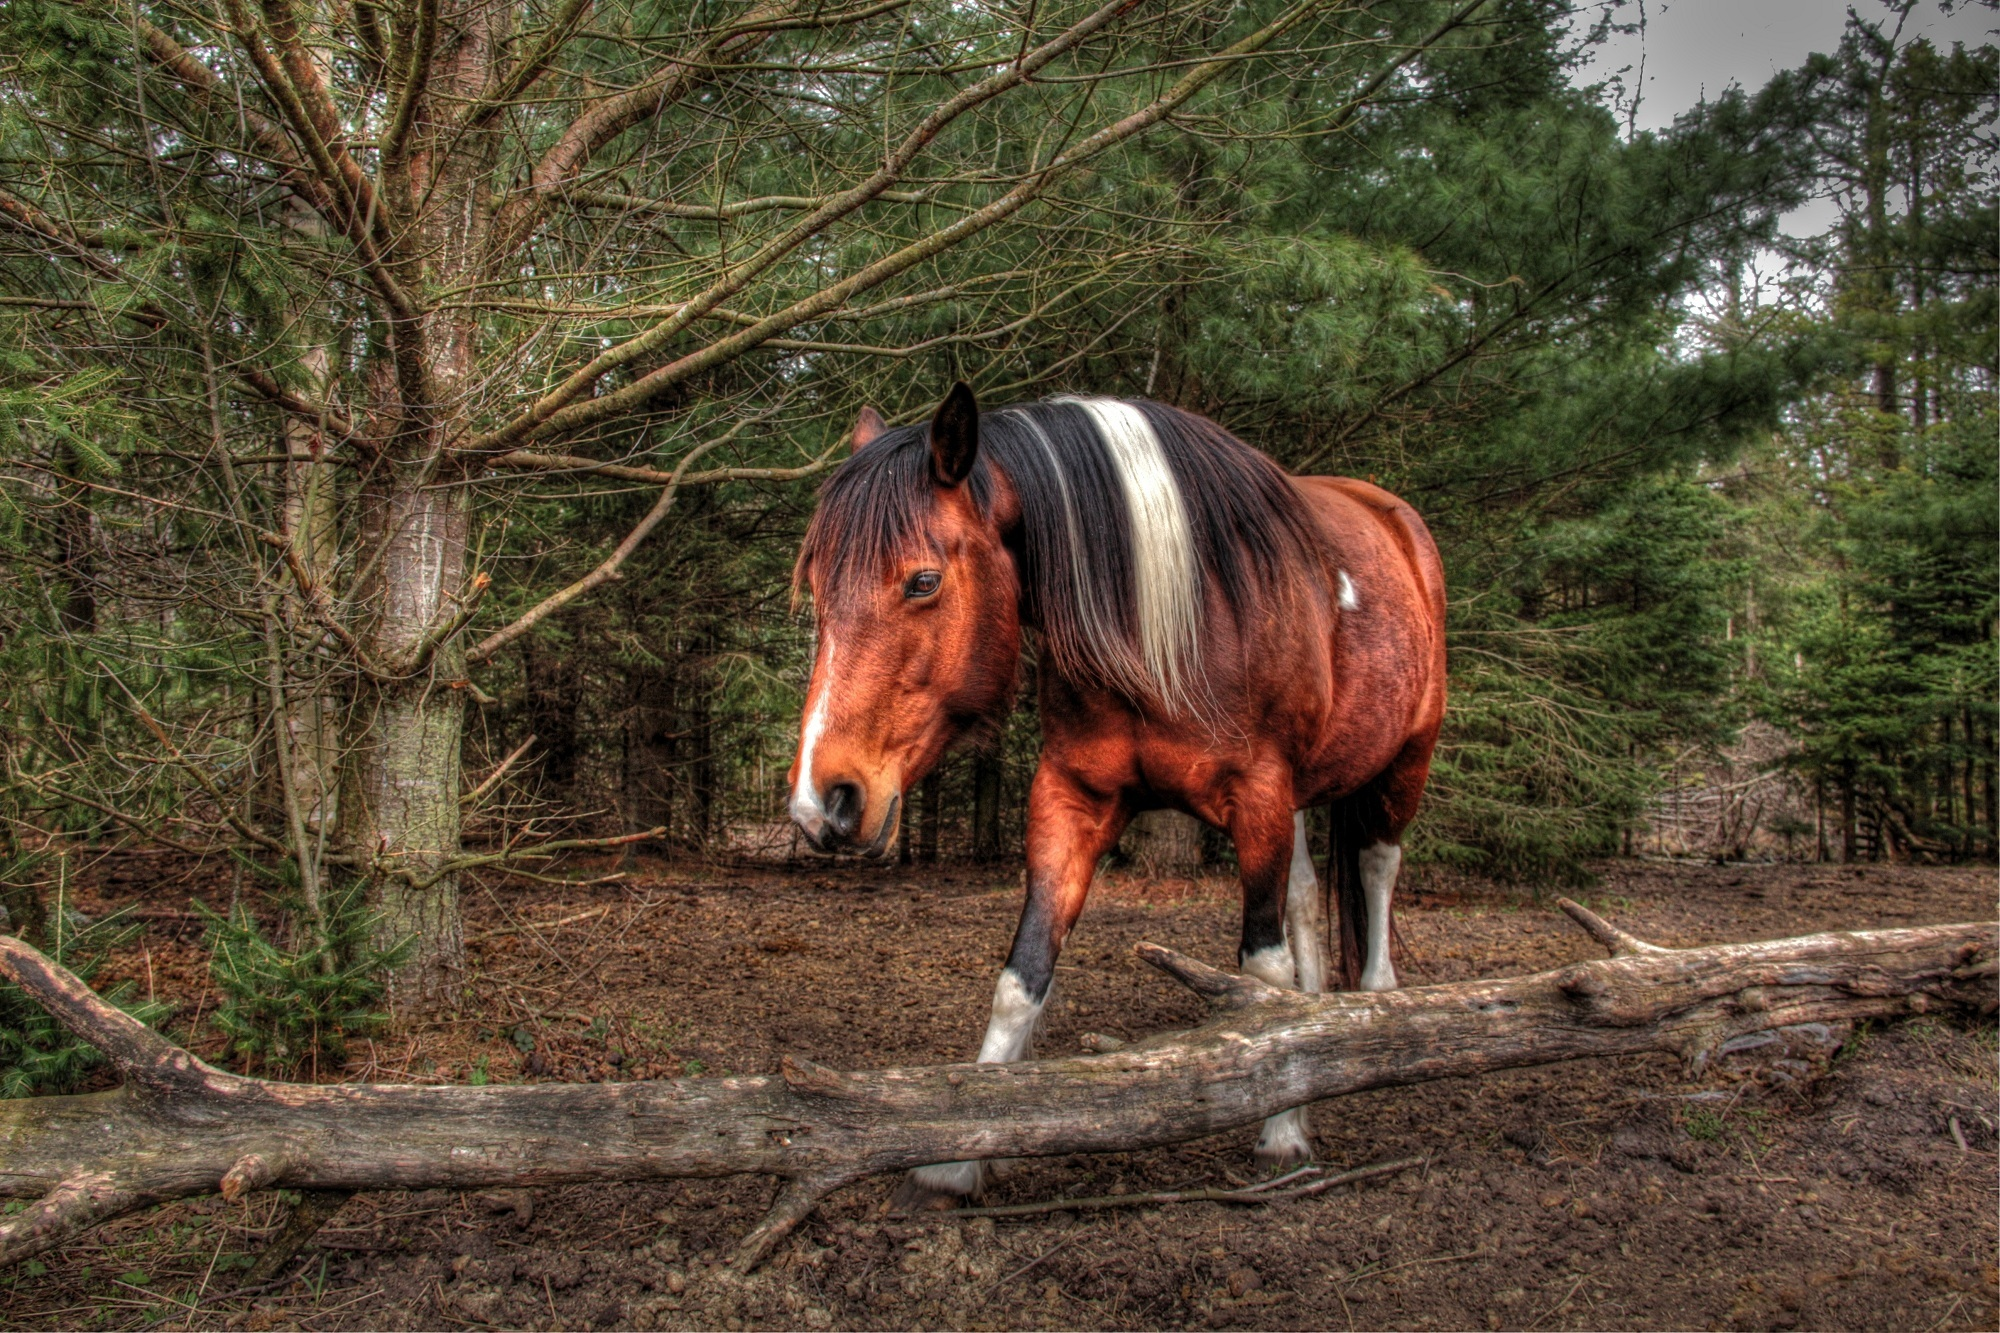 Wallpaper horse horse muzzle mane forest wallpapers animals 1680x1050